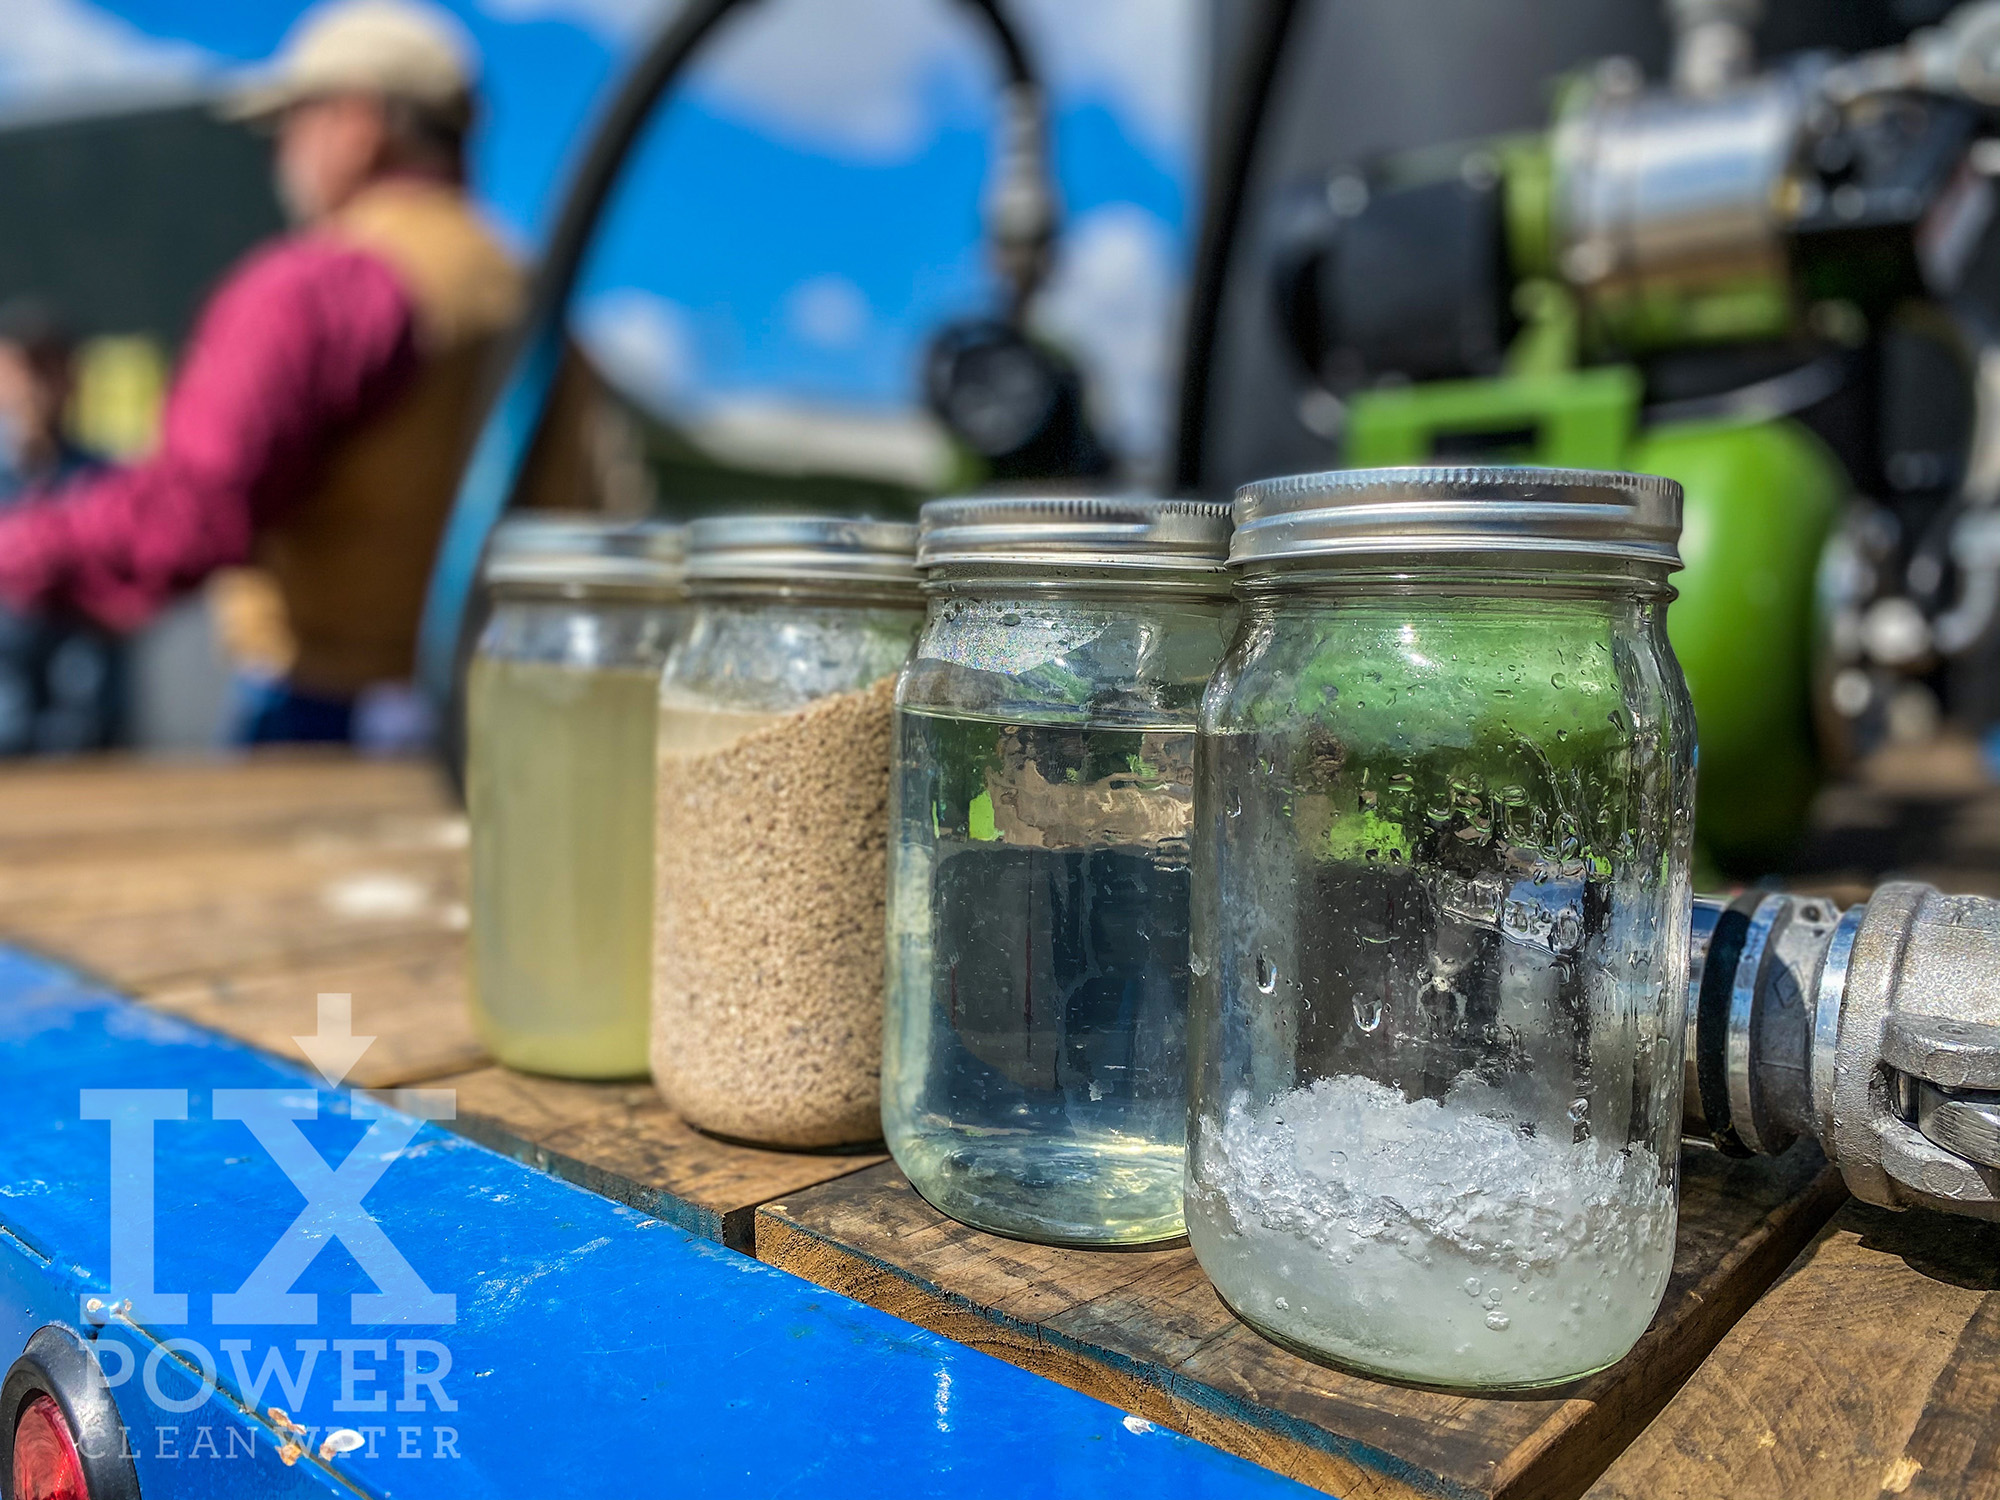 IX Water Launches SEC Regulated Crowdfunding for Products to Treat Wastewater Produced by Oil and Gas Industry